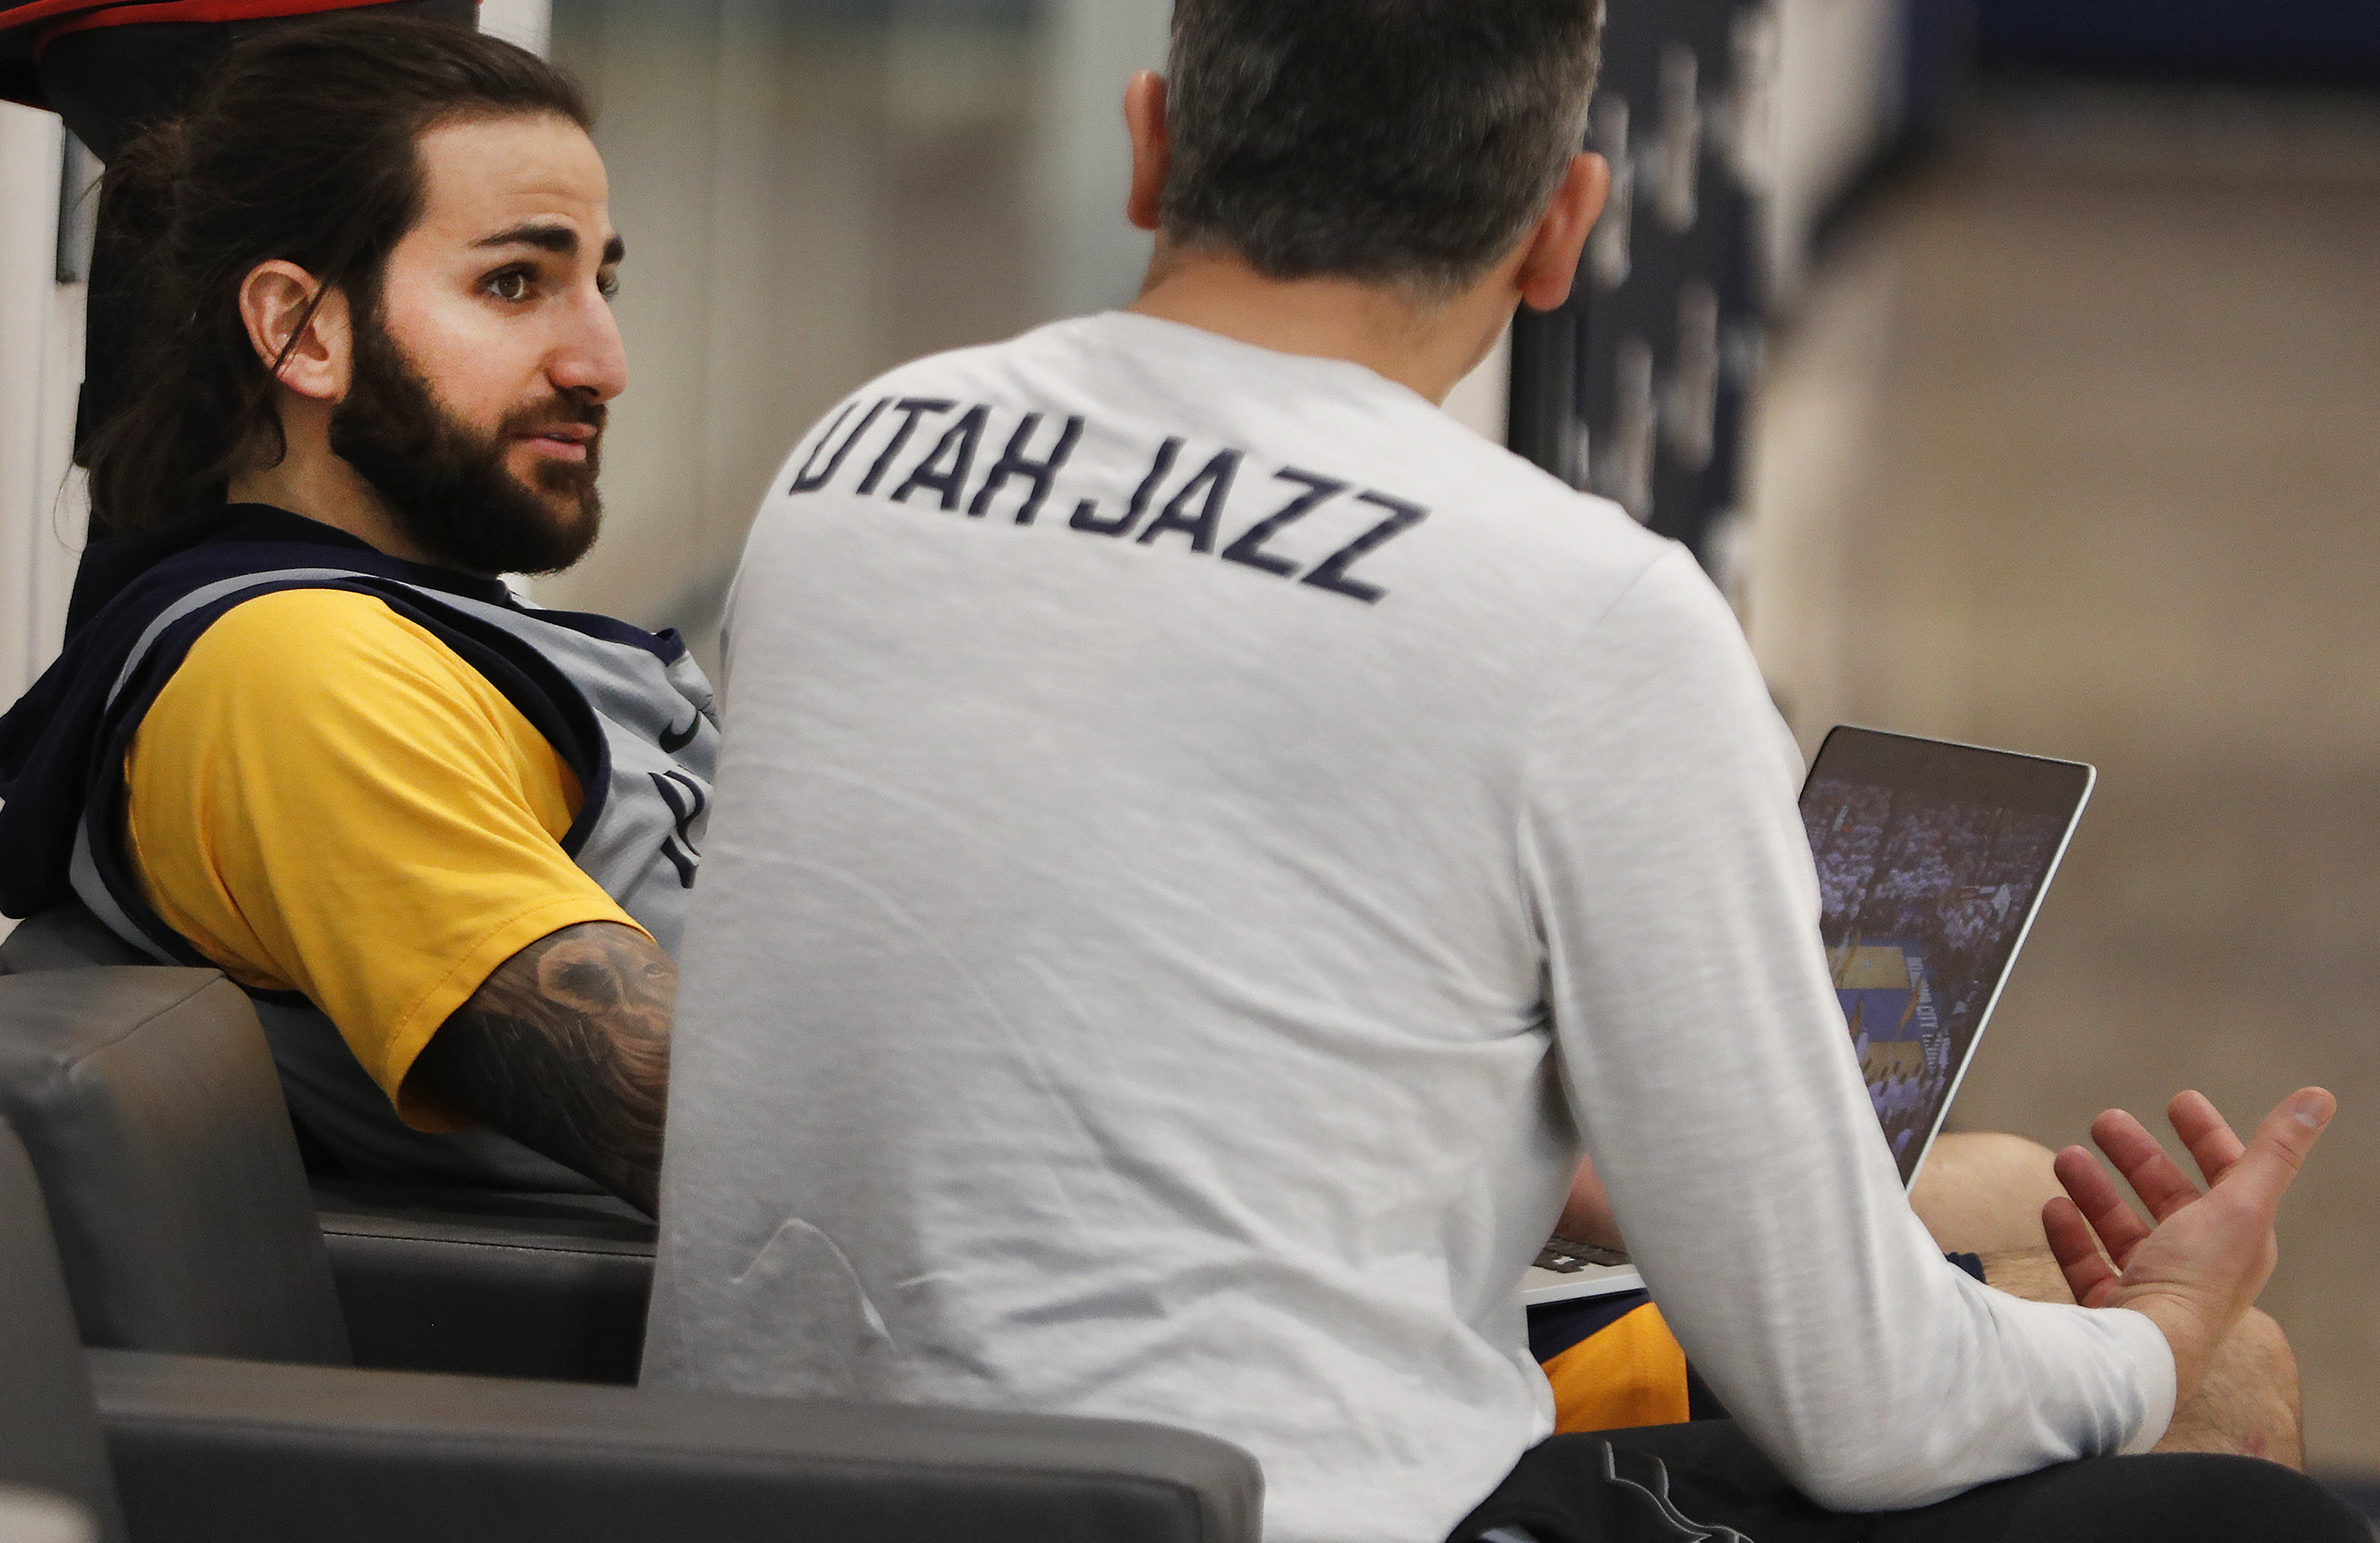 April 20, 2018 - Salt Lake City, UTAH, Estados Unidos - Spanish player Ricky Rubio (L) of the Utah Jazz participates in a training session in Salt Lake City, Utah, where the team will play against the Oklahoma Thunder the playoff third round of the NBA Western Conference, USA, 20 April 2018. (Credit Image: © George Frey/EFE via ZUMA Press)